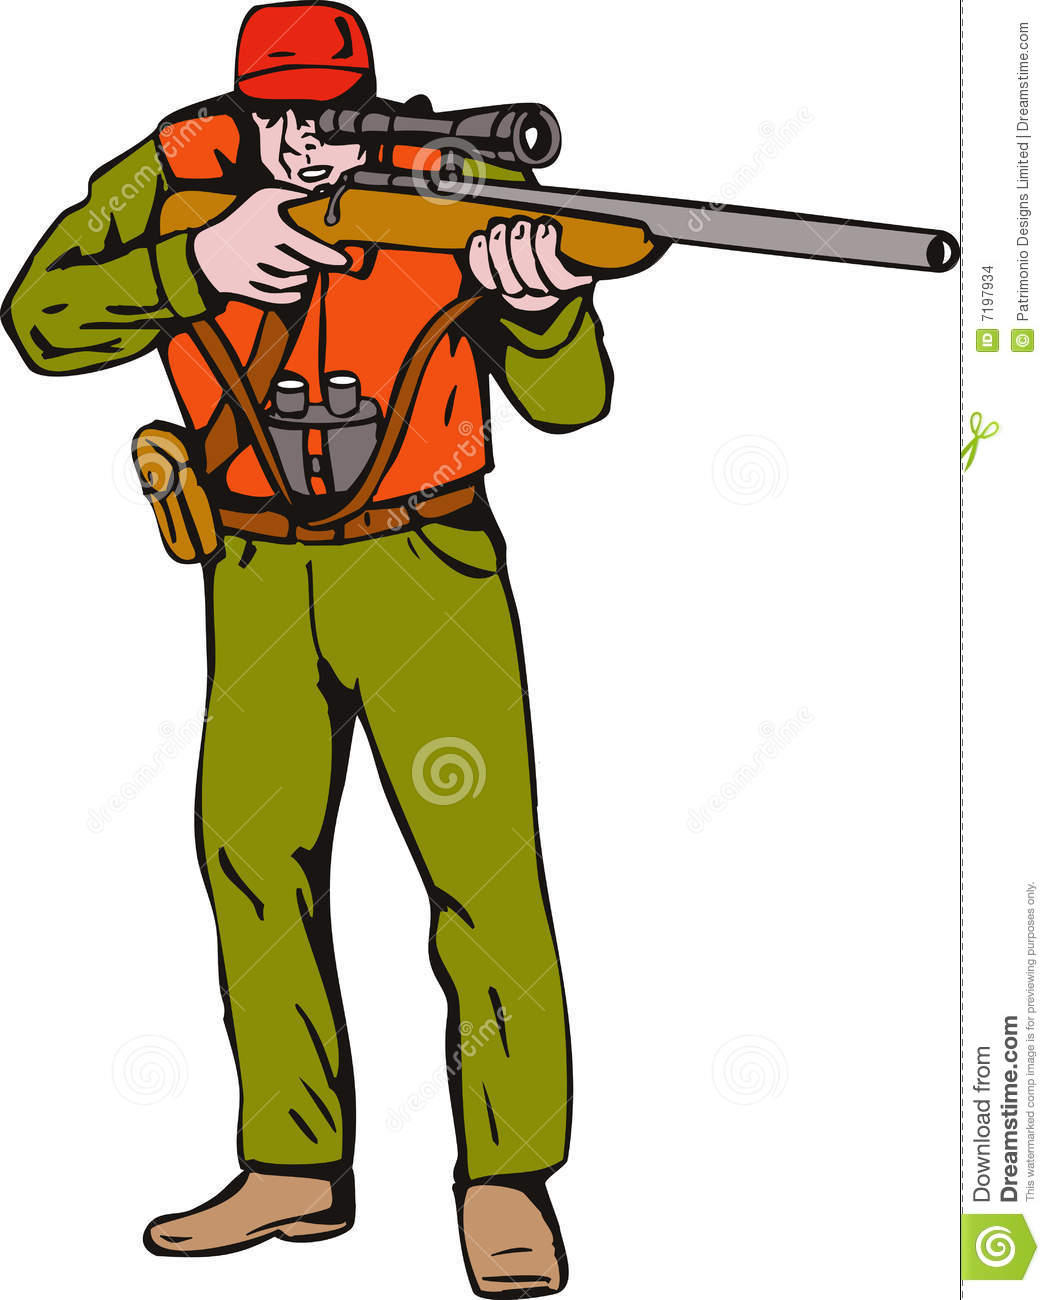 Hunting clipart hunting equipment. Hunter clip art free